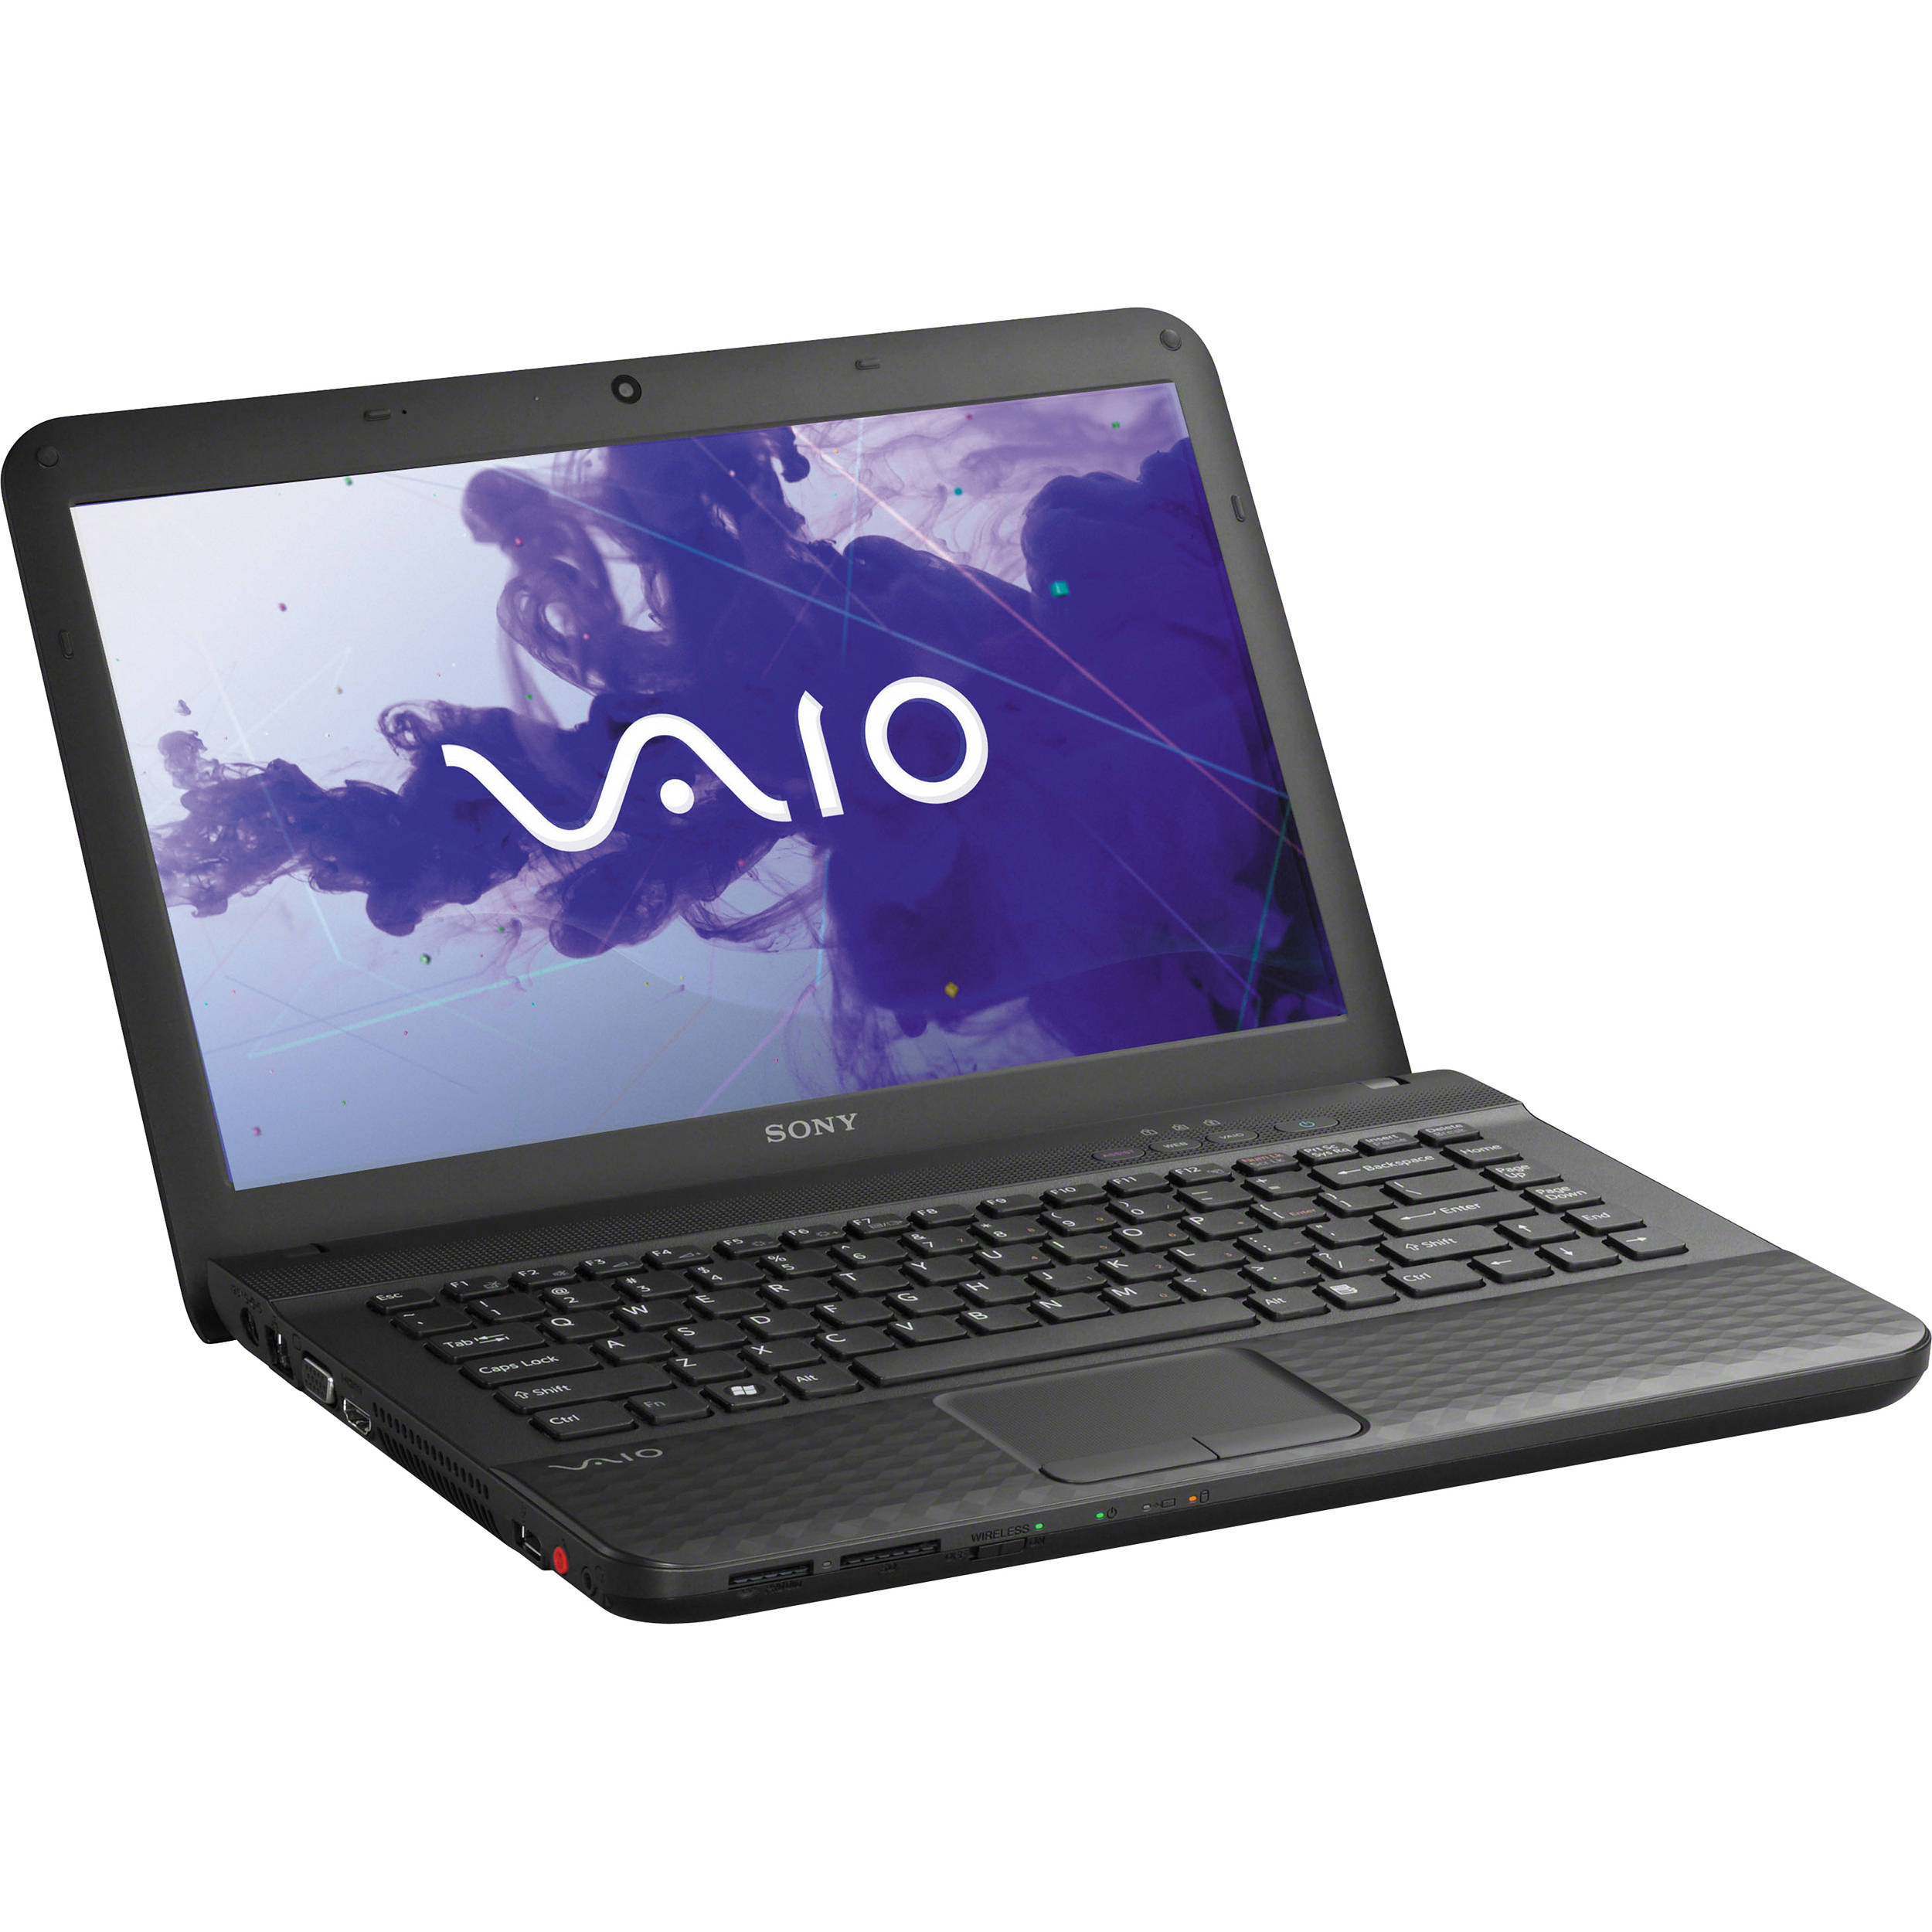 SONY VAIO VPCEG25FX/B EASY CONNECT DRIVER WINDOWS